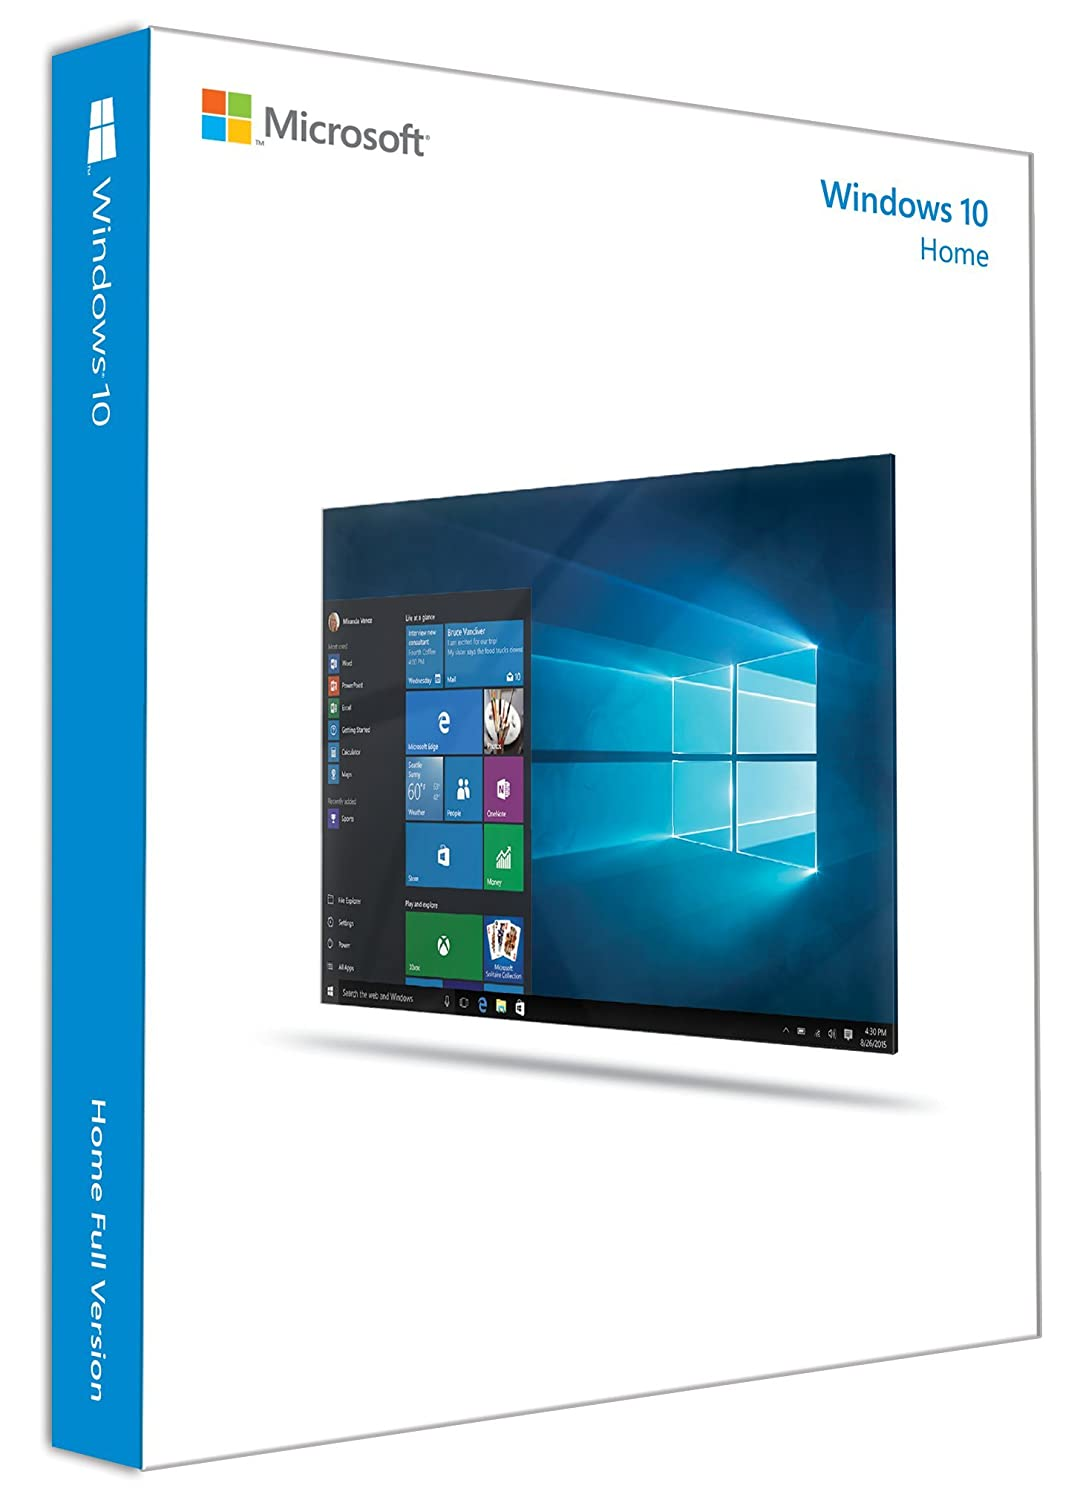 Microsoft Windows 10 Home English INTL: 32 and 64 Bits on USB 3.0 Included  - Full Retail Pack - 1 PC, 1 User: Amazon.in: Software